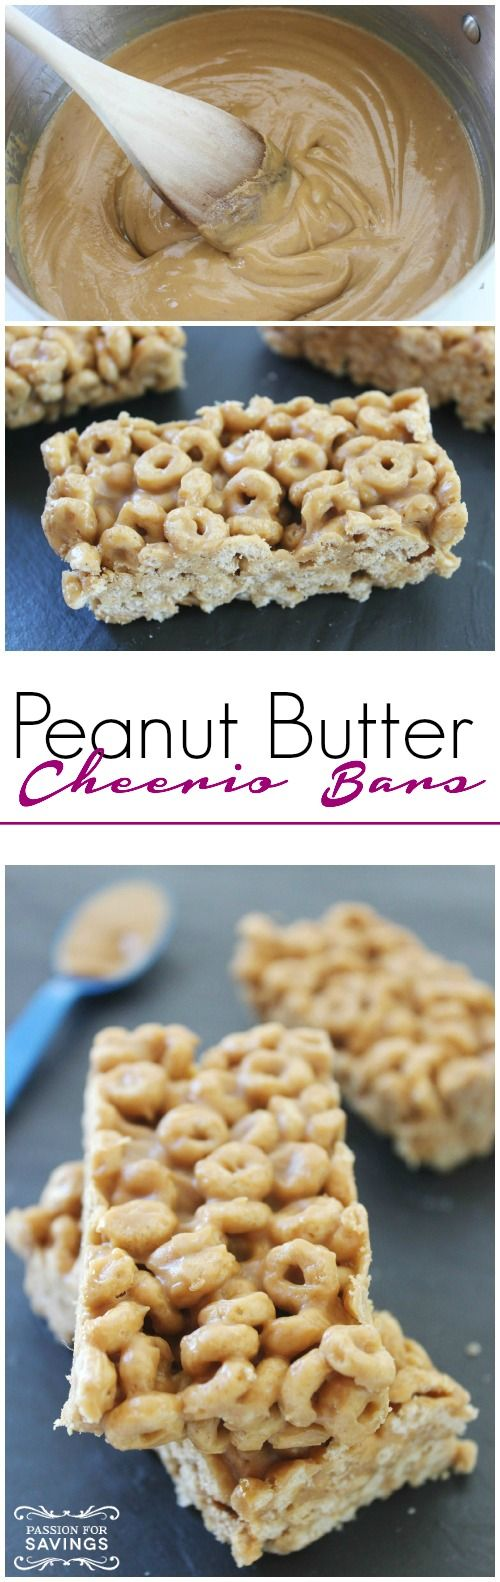 Re-Pin By @siliconem -  Peanut Butter Cheerio Bars! Homemade Breakfast Recipe or Snack Recipe for an easy Treat!